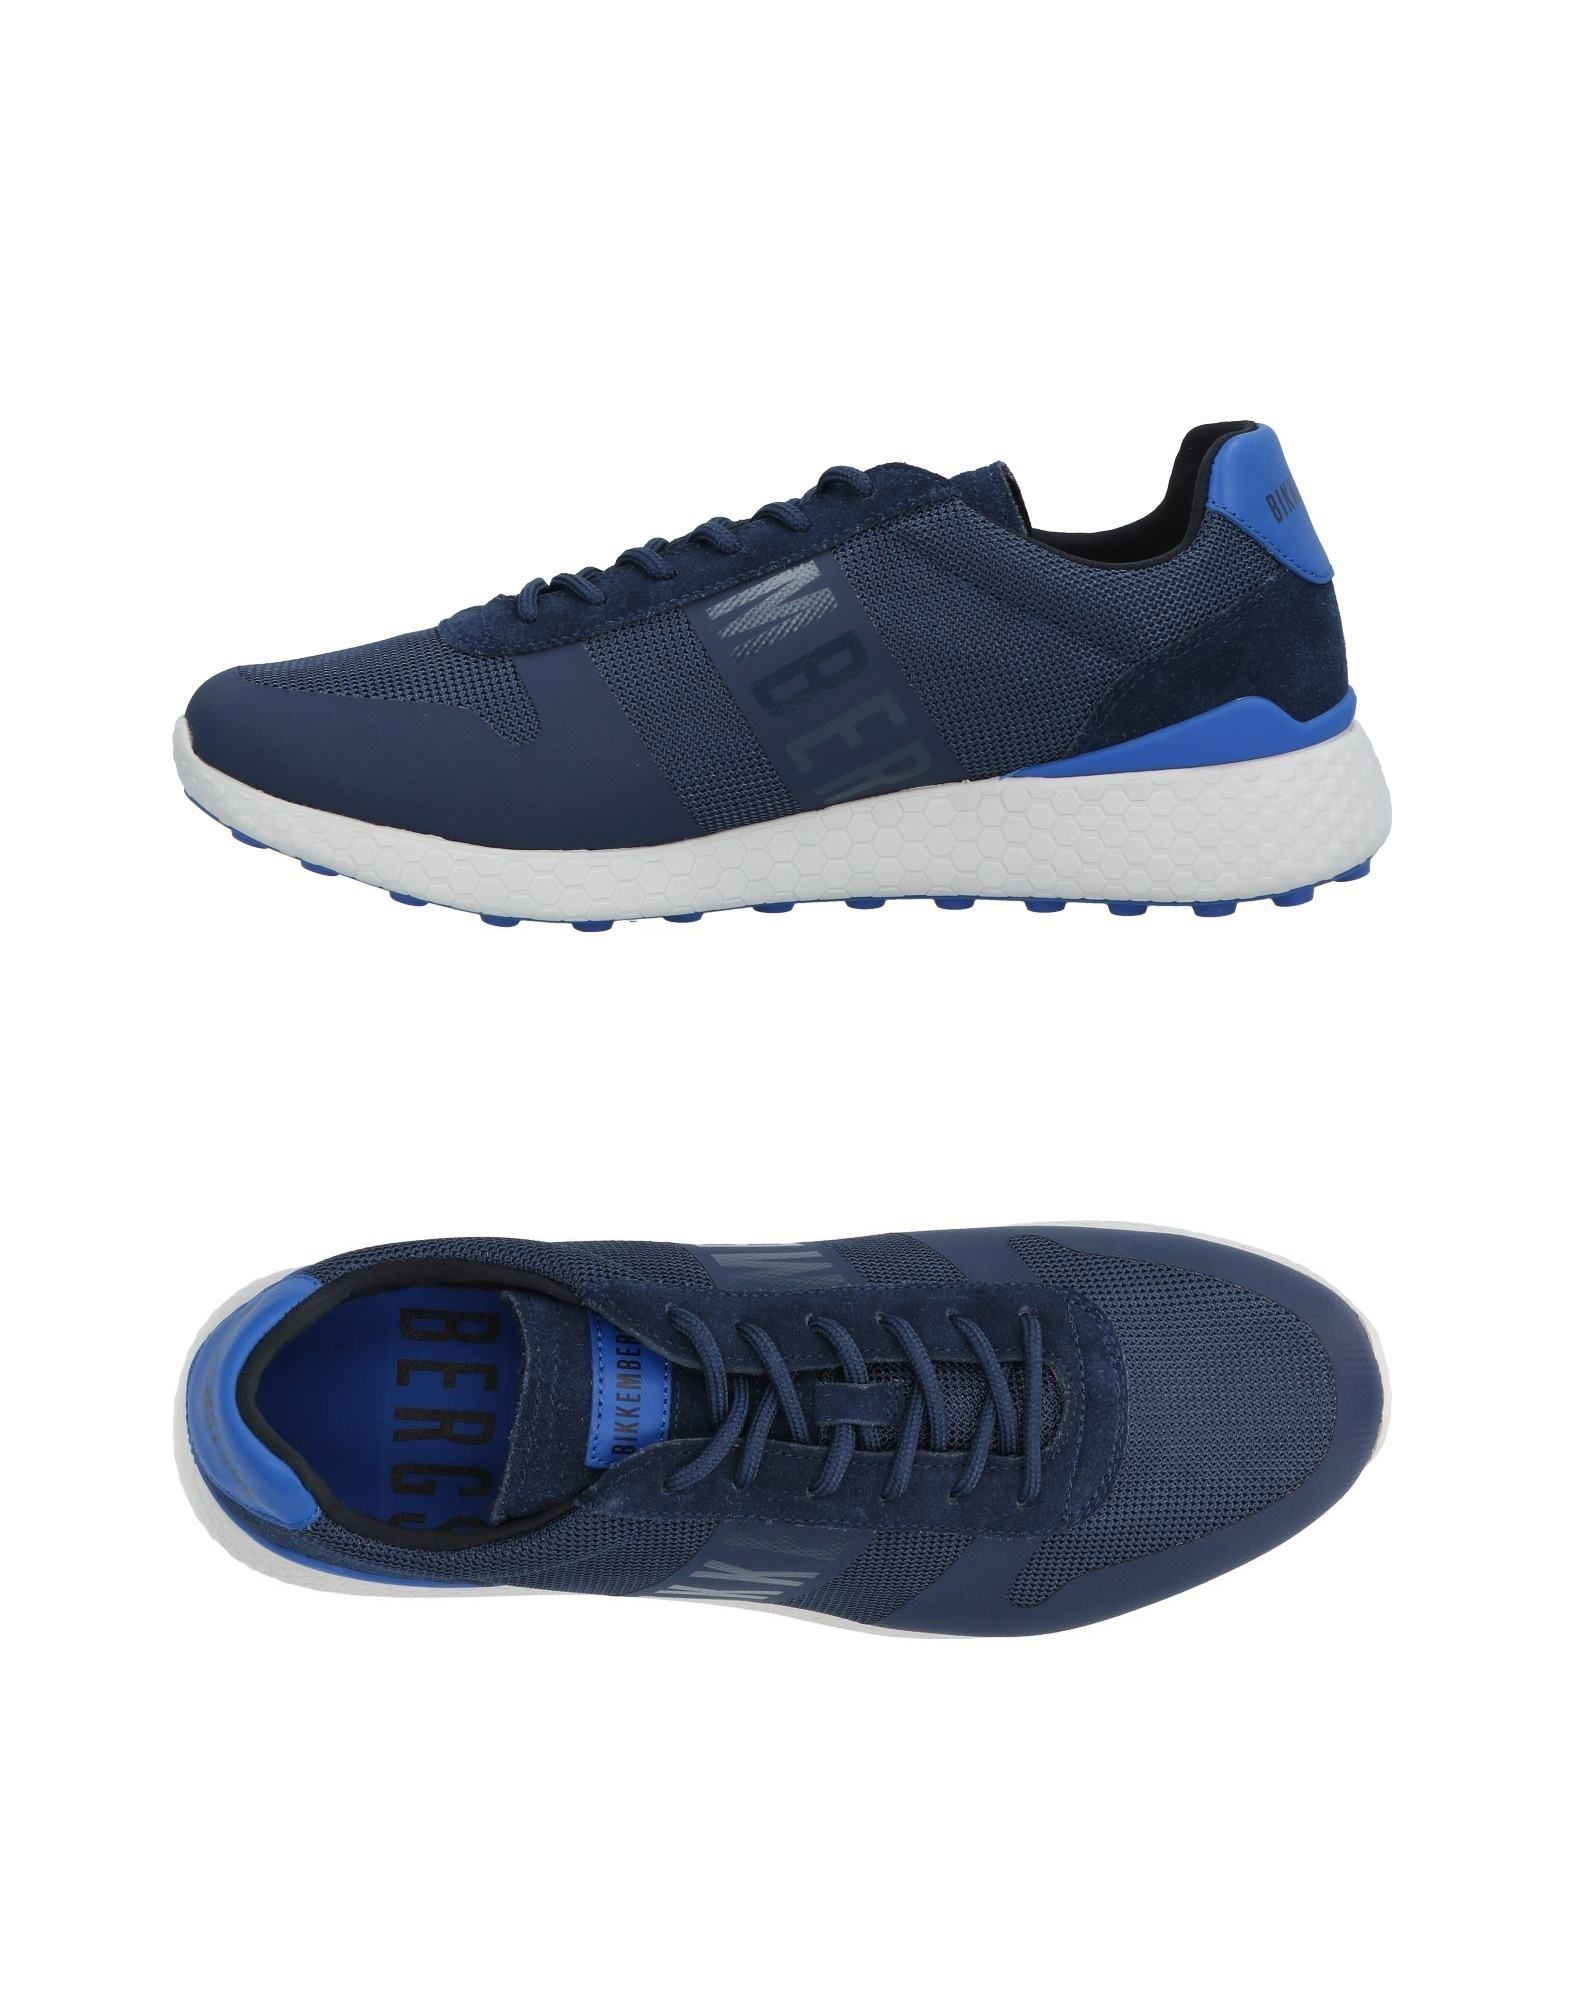 Bikkembergs Sneakers Sneakers - Men Bikkembergs Sneakers Bikkembergs online on  Canada - 11449939QP a61675